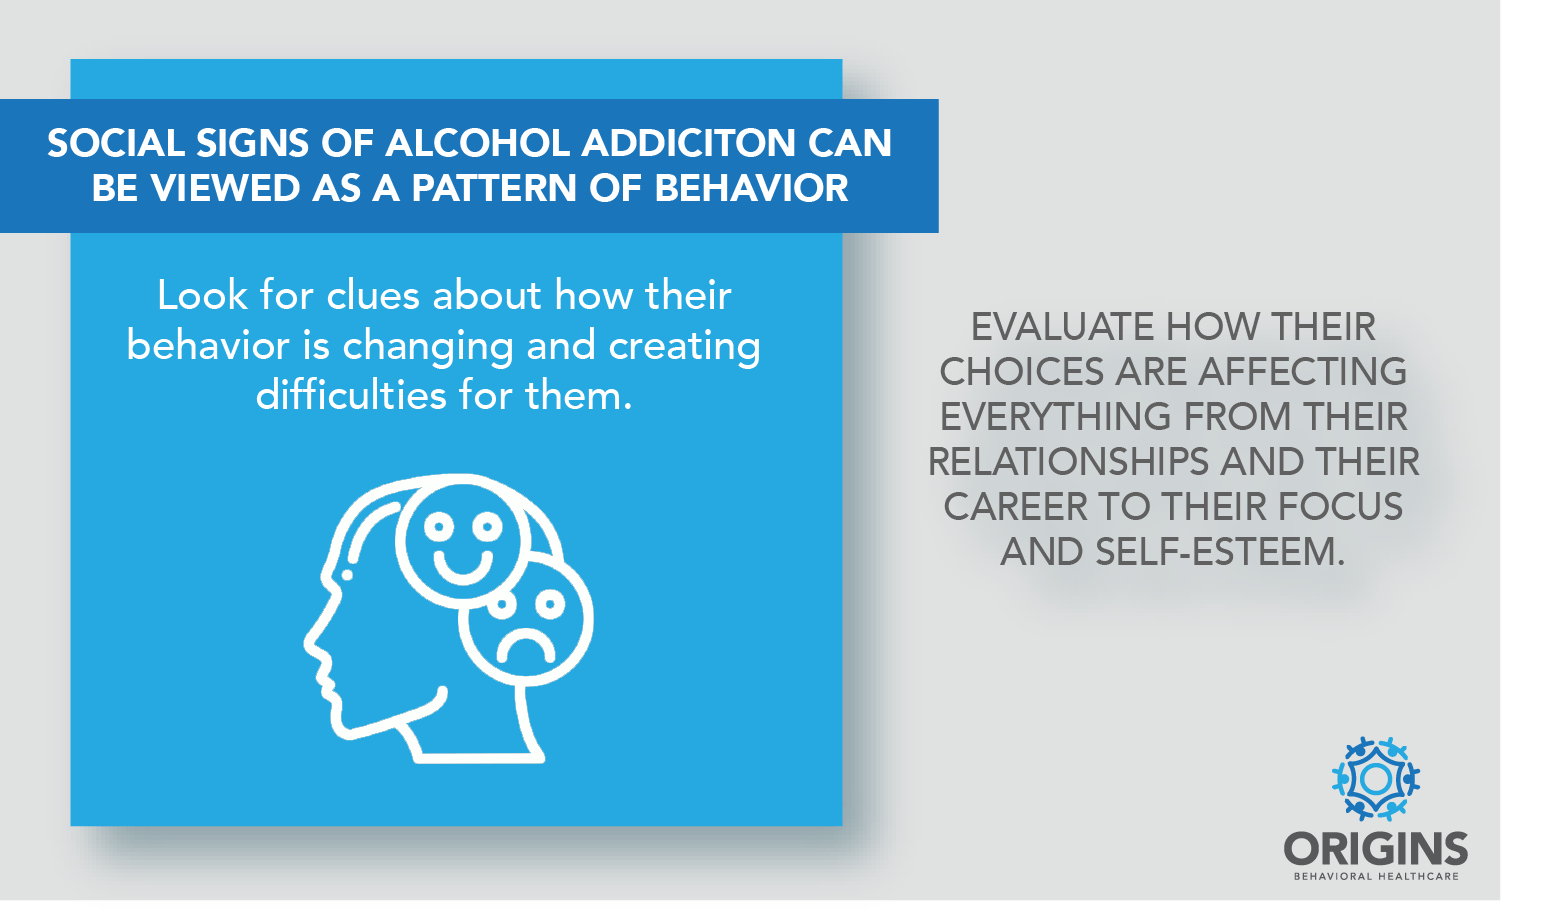 Social signs of alcohol addiction